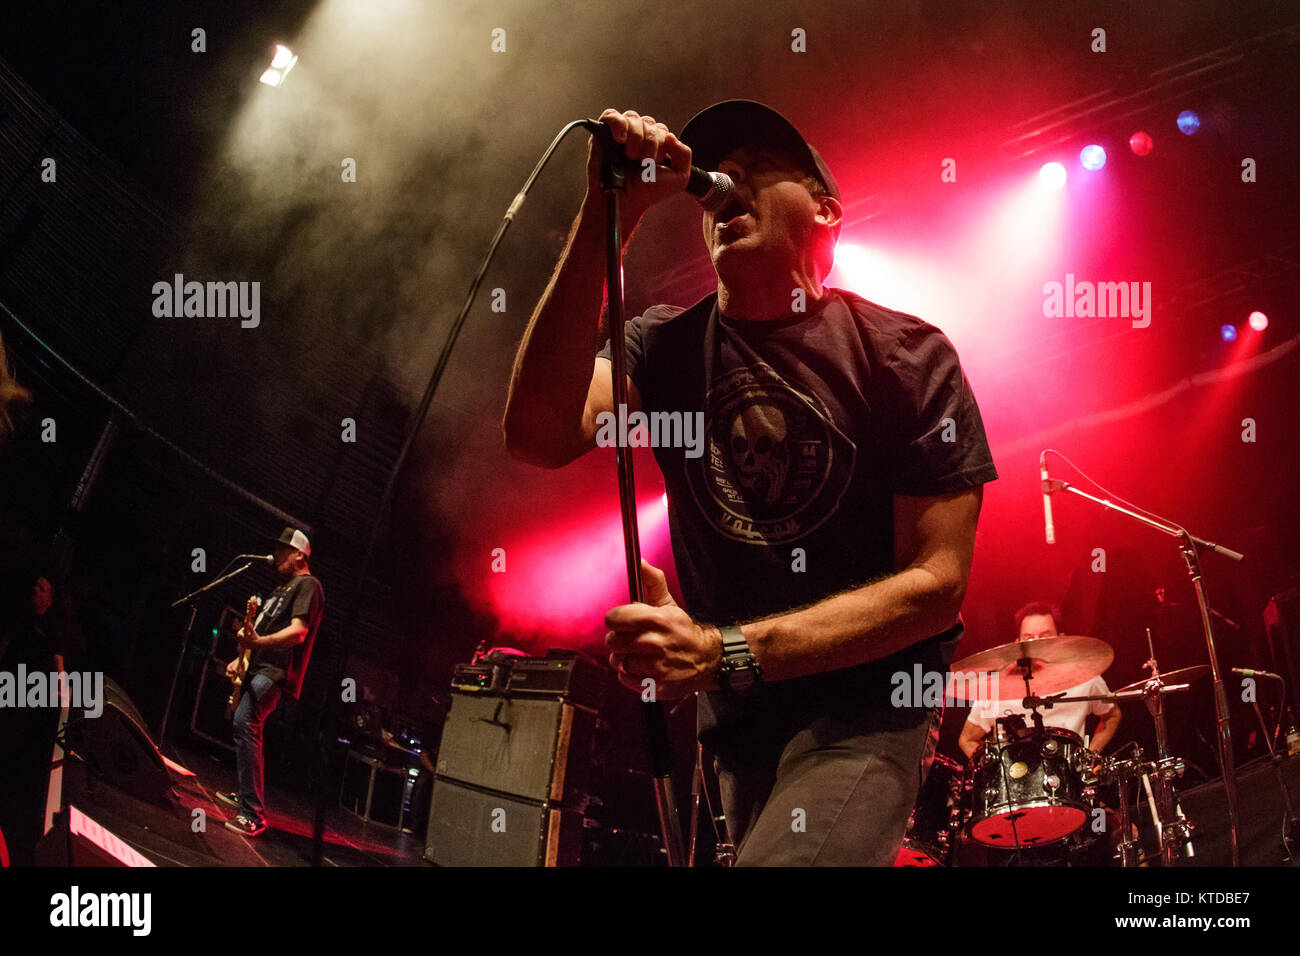 The American punk band Pennywise performs a live concert at Amager Bio in Copenhagen. Here vocalist Jim Lindberg Stock Photo